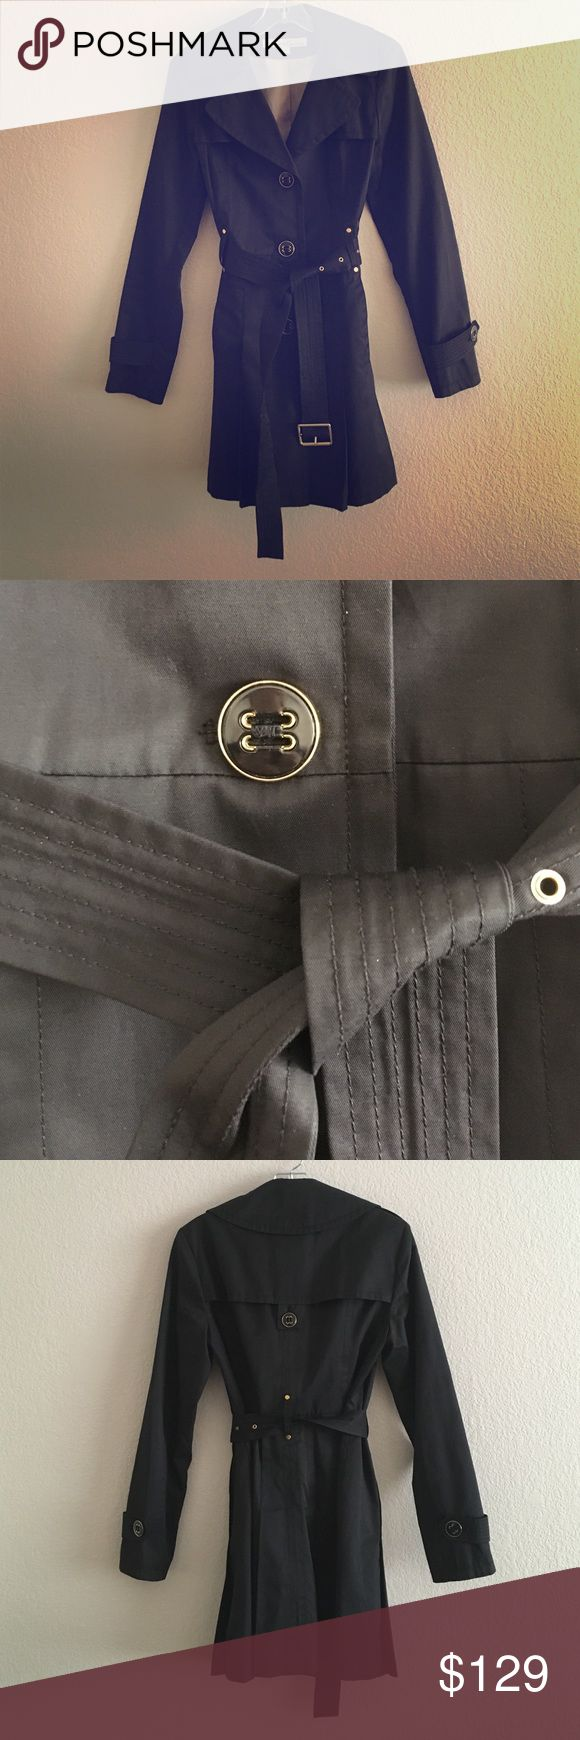 Black Trench Coat Black Kenneth Cole belted trench coat with gold details. Kenneth Cole Reaction Jackets & Coats Trench Coats